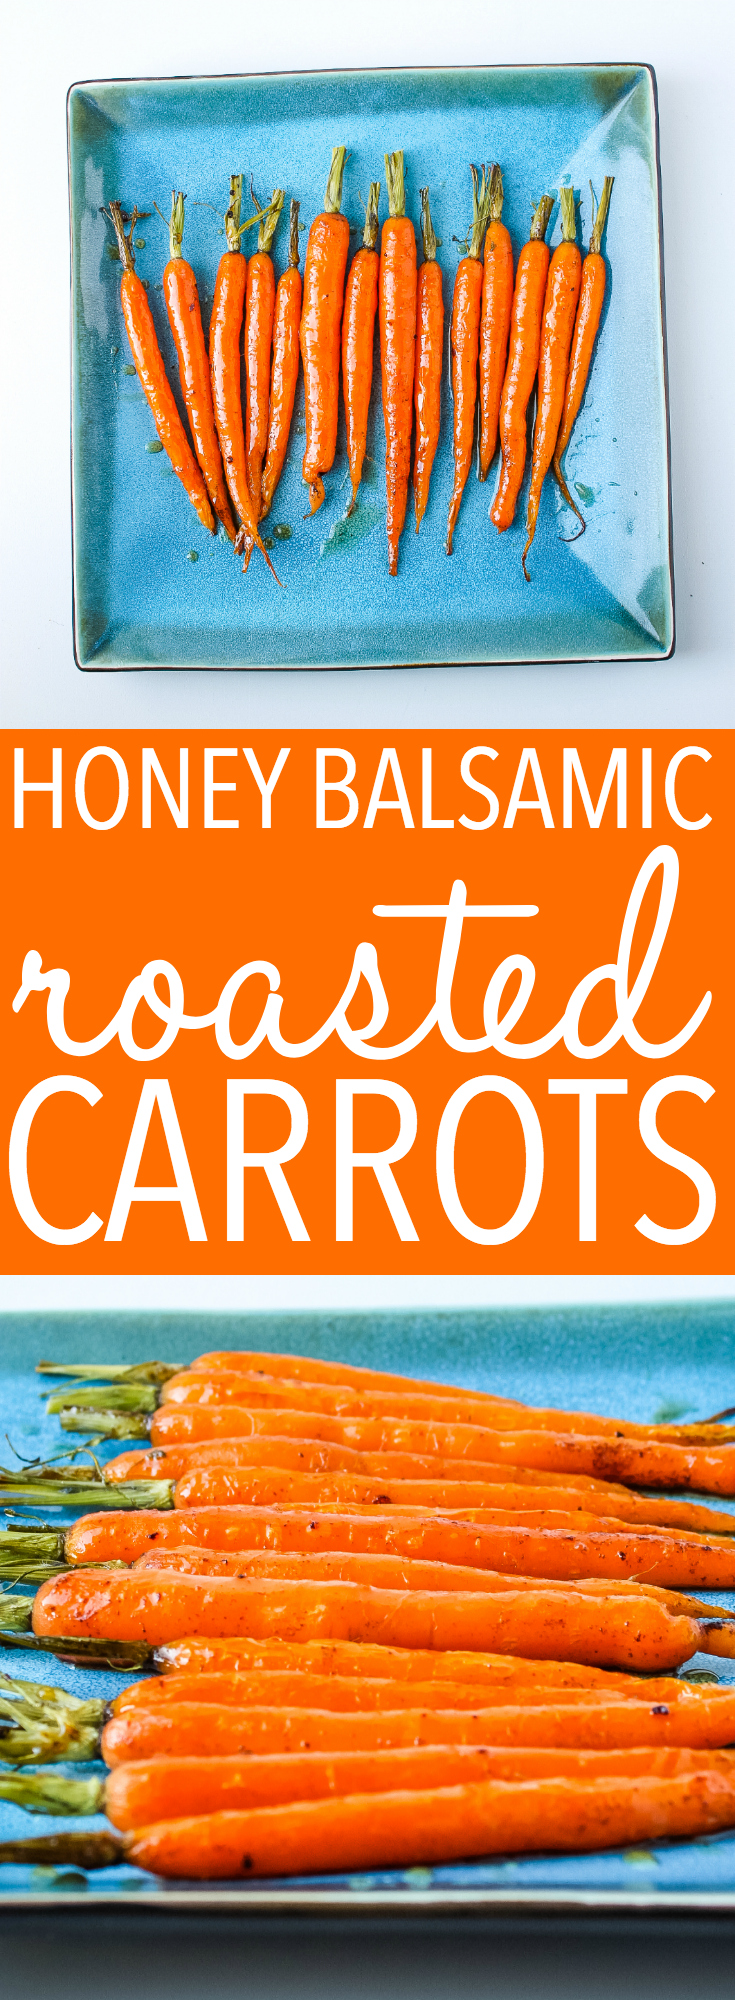 Balsamic Honey Glazed Carrots are the perfect fall side dish! Our family gobbles these honey roasted carrots up and they're so easy to make! Recipe from thebusybaker.ca! #honey #glazed #carrots #sidedish #holidays #christmas #thanksgiving #healthy #weightloss #weightwatchers #vegetarian via @busybakerblog